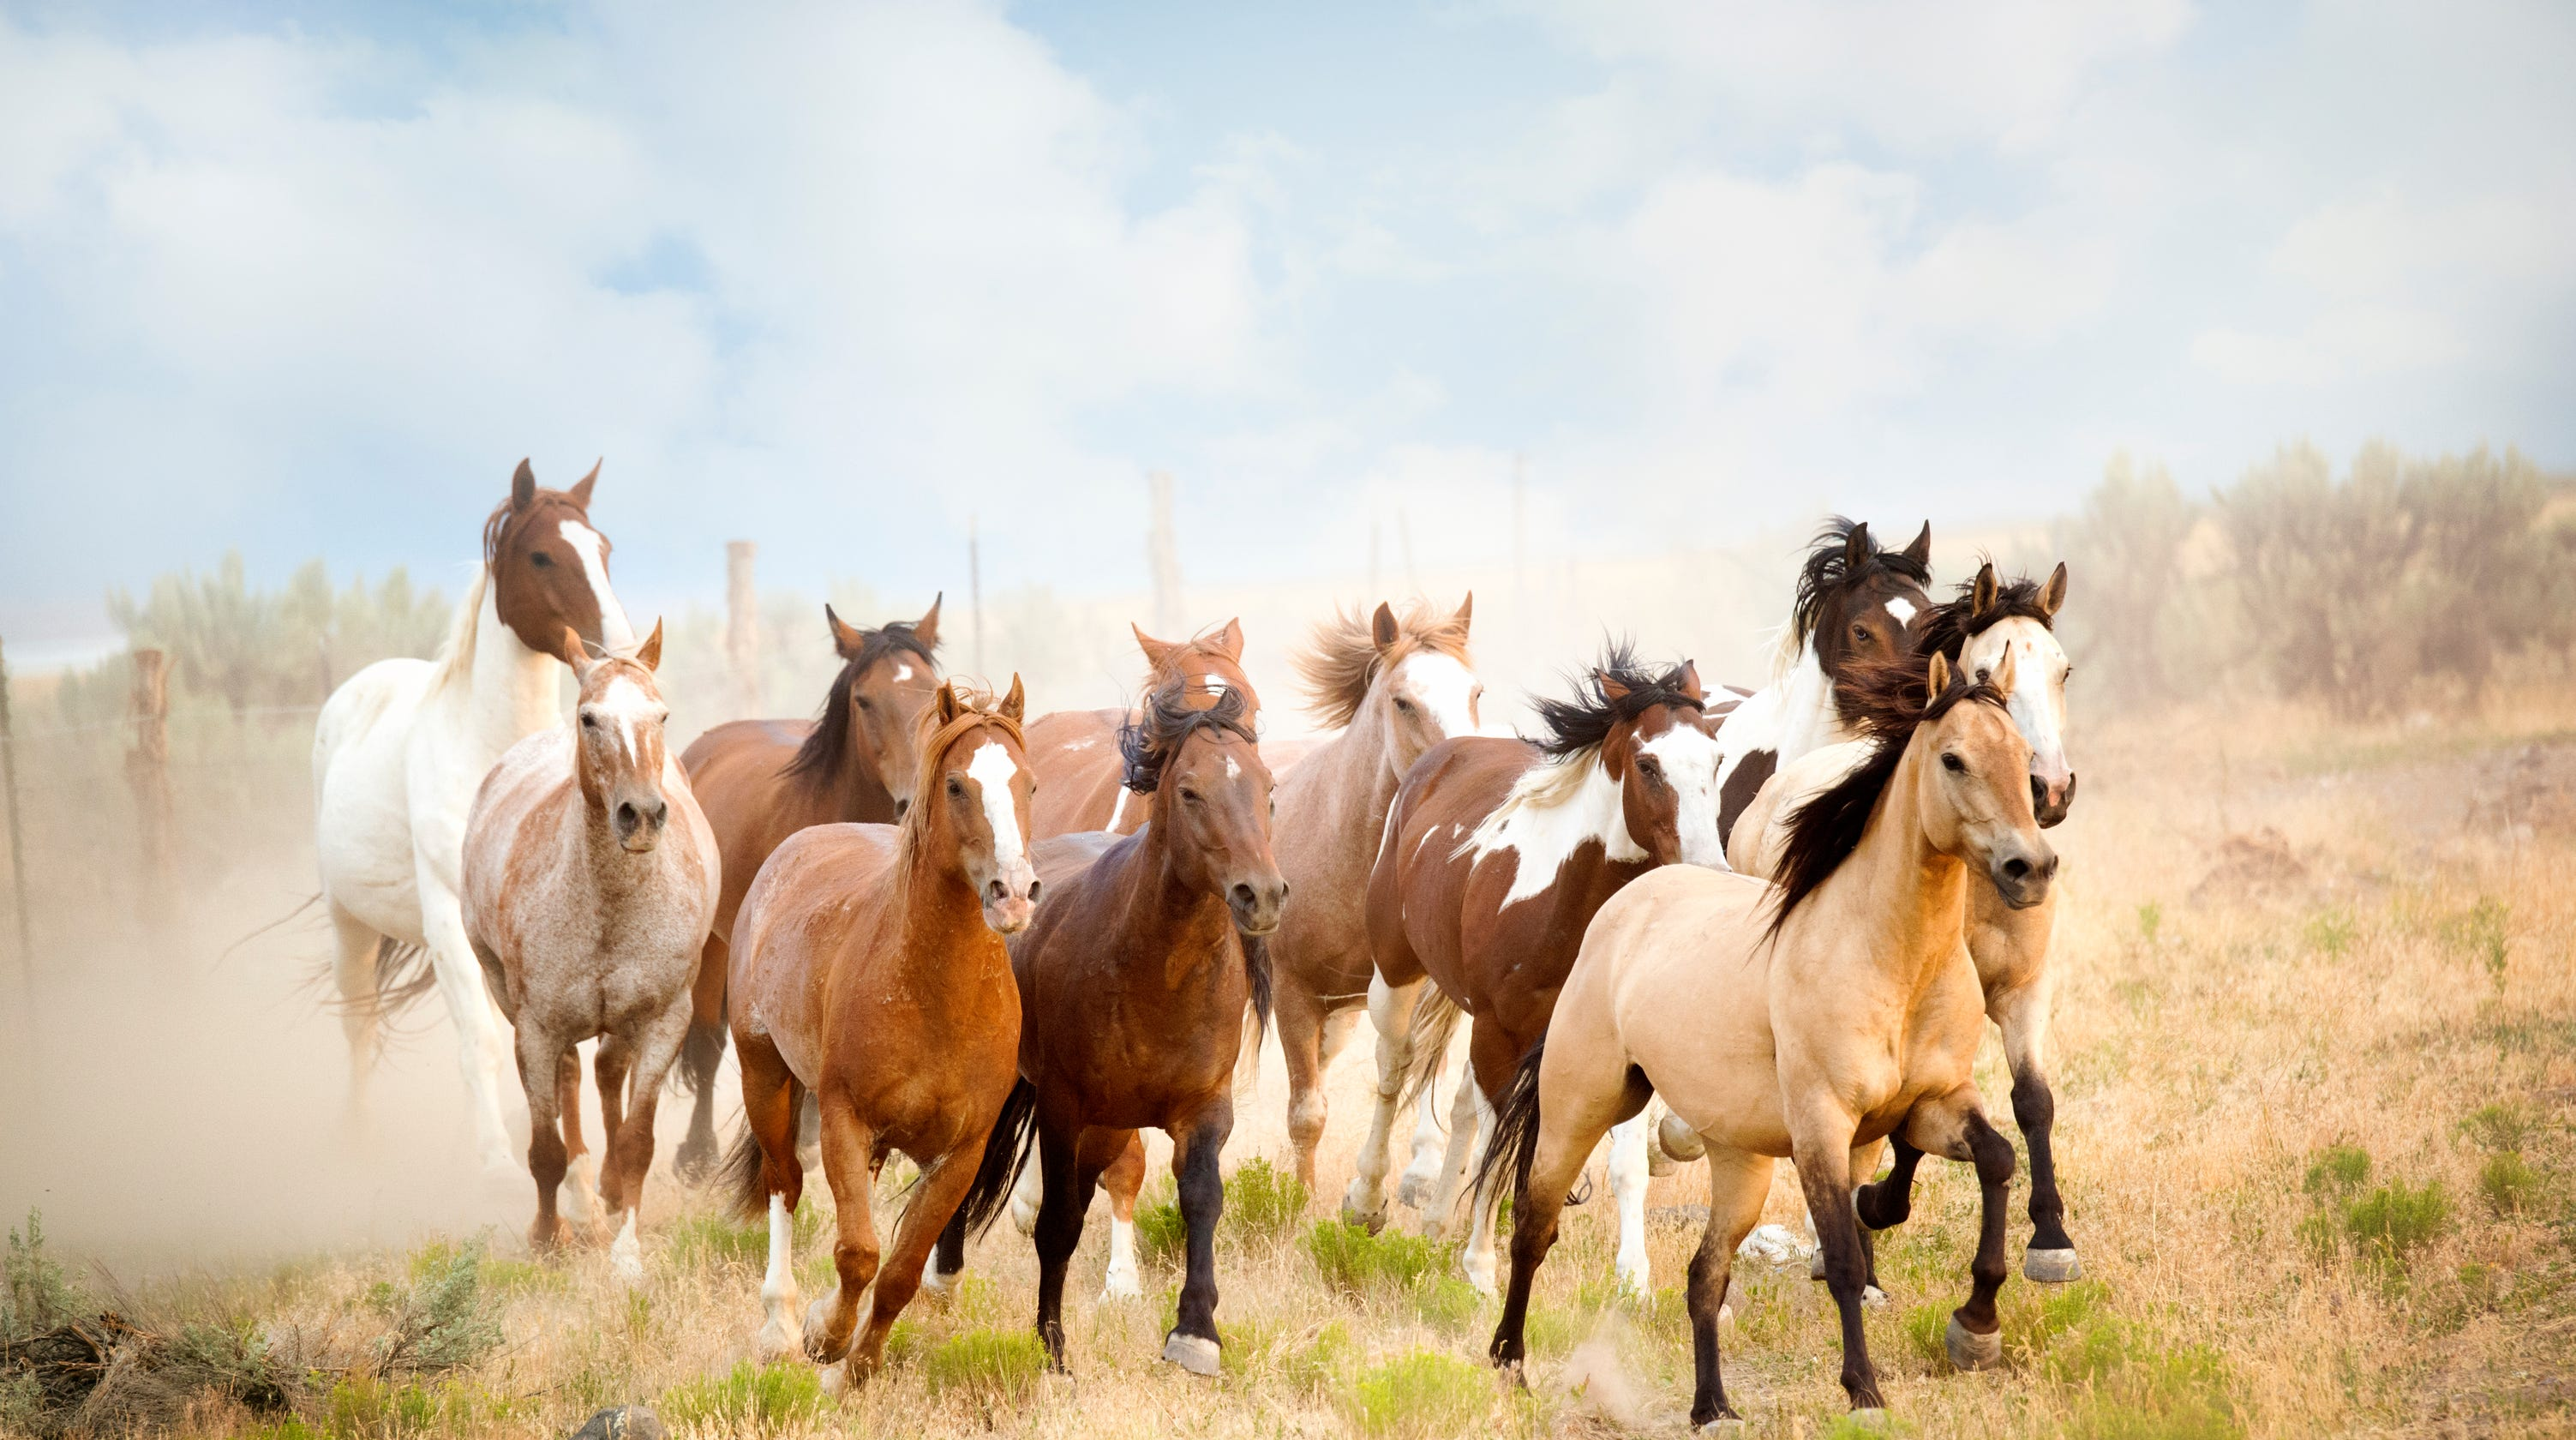 California wild horse round-up stirs slaughterhouse fears